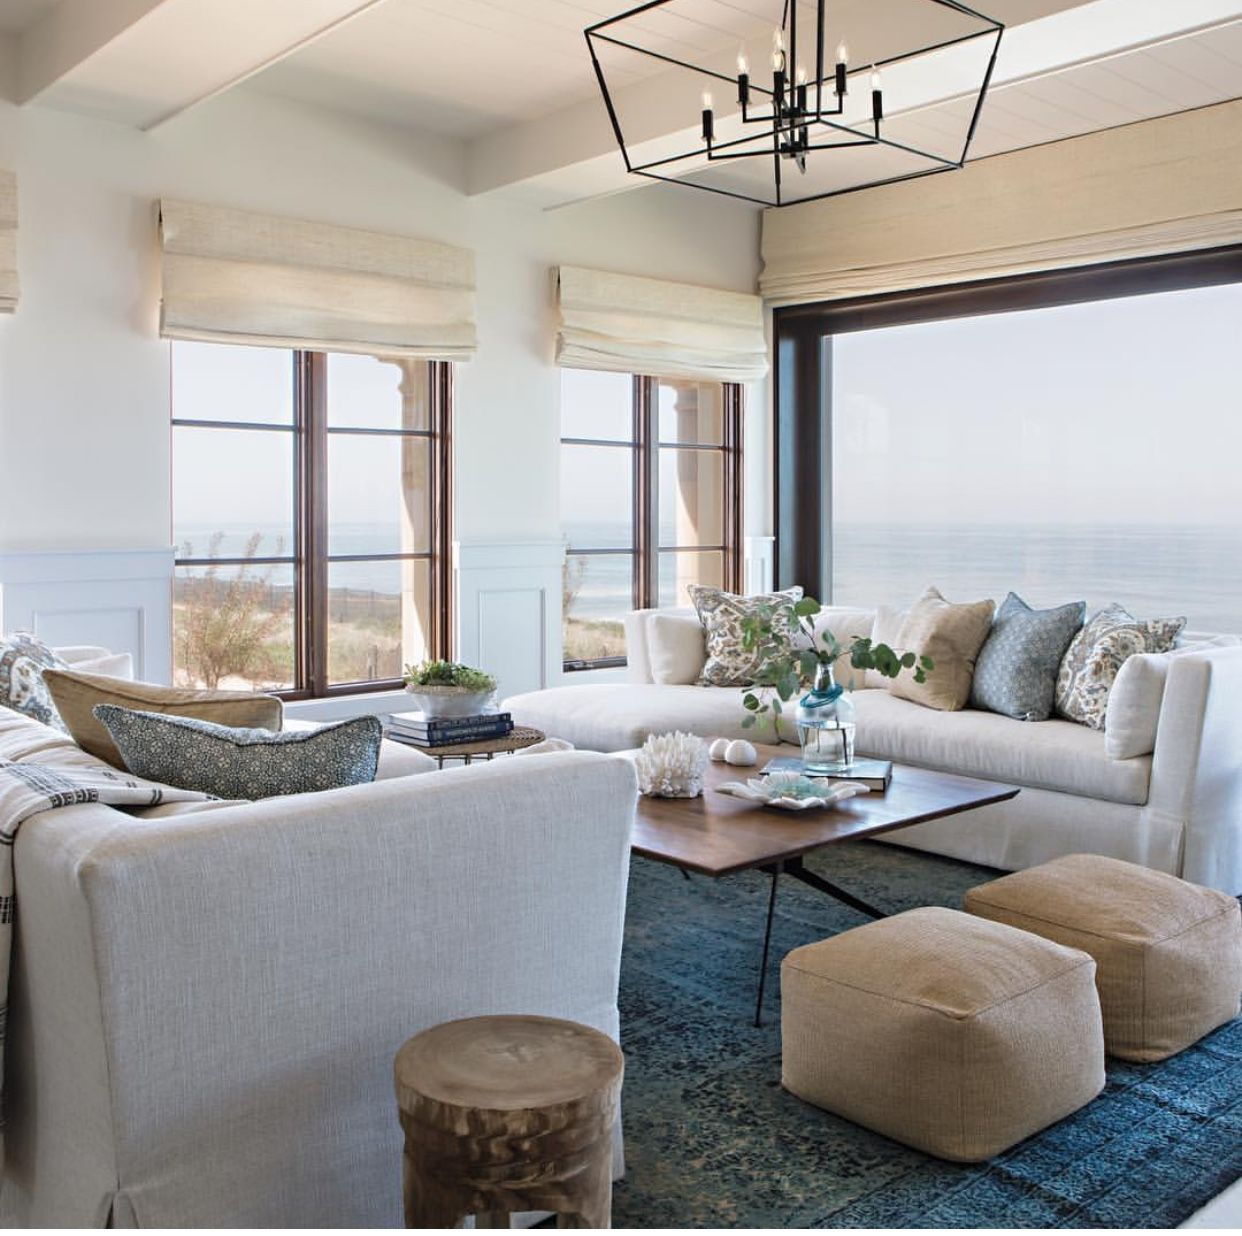 Furniture Lay Out Inspiration in 2020 | Beach living room ...